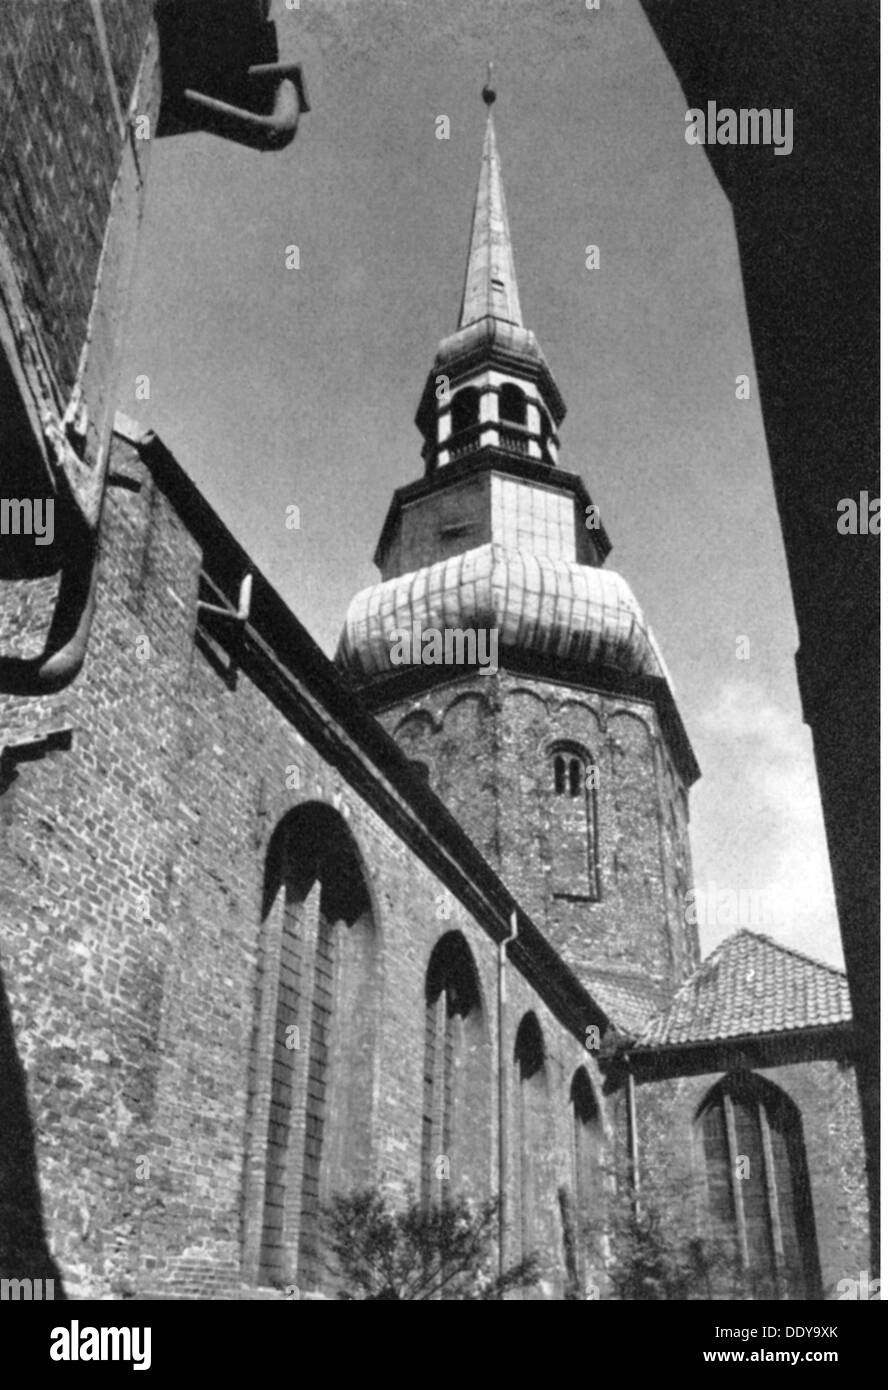 geography / travel, Germany, Stade, churches, St. Cosmae et Damiani, built 2nd half 13th century, exterior view, 20th century, 13th century, 20th century, Lower Saxony, Gothic style, Gothic period, red brick Gothic, religion, religions, Christianity, steeple, church tower, steeples, church towers, Cosmas and Damian, Northern Germany, the North of Germany, Germany, Central Europe, Europe, bell tower, belfry, bell towers, belfries, churches, church, beadhouse, bedehouse, sacred building, sacred buildings, architecture, Middle Ages, medieval, mediaeval, historic, , Additional-Rights-Clearences-NA - Stock Image